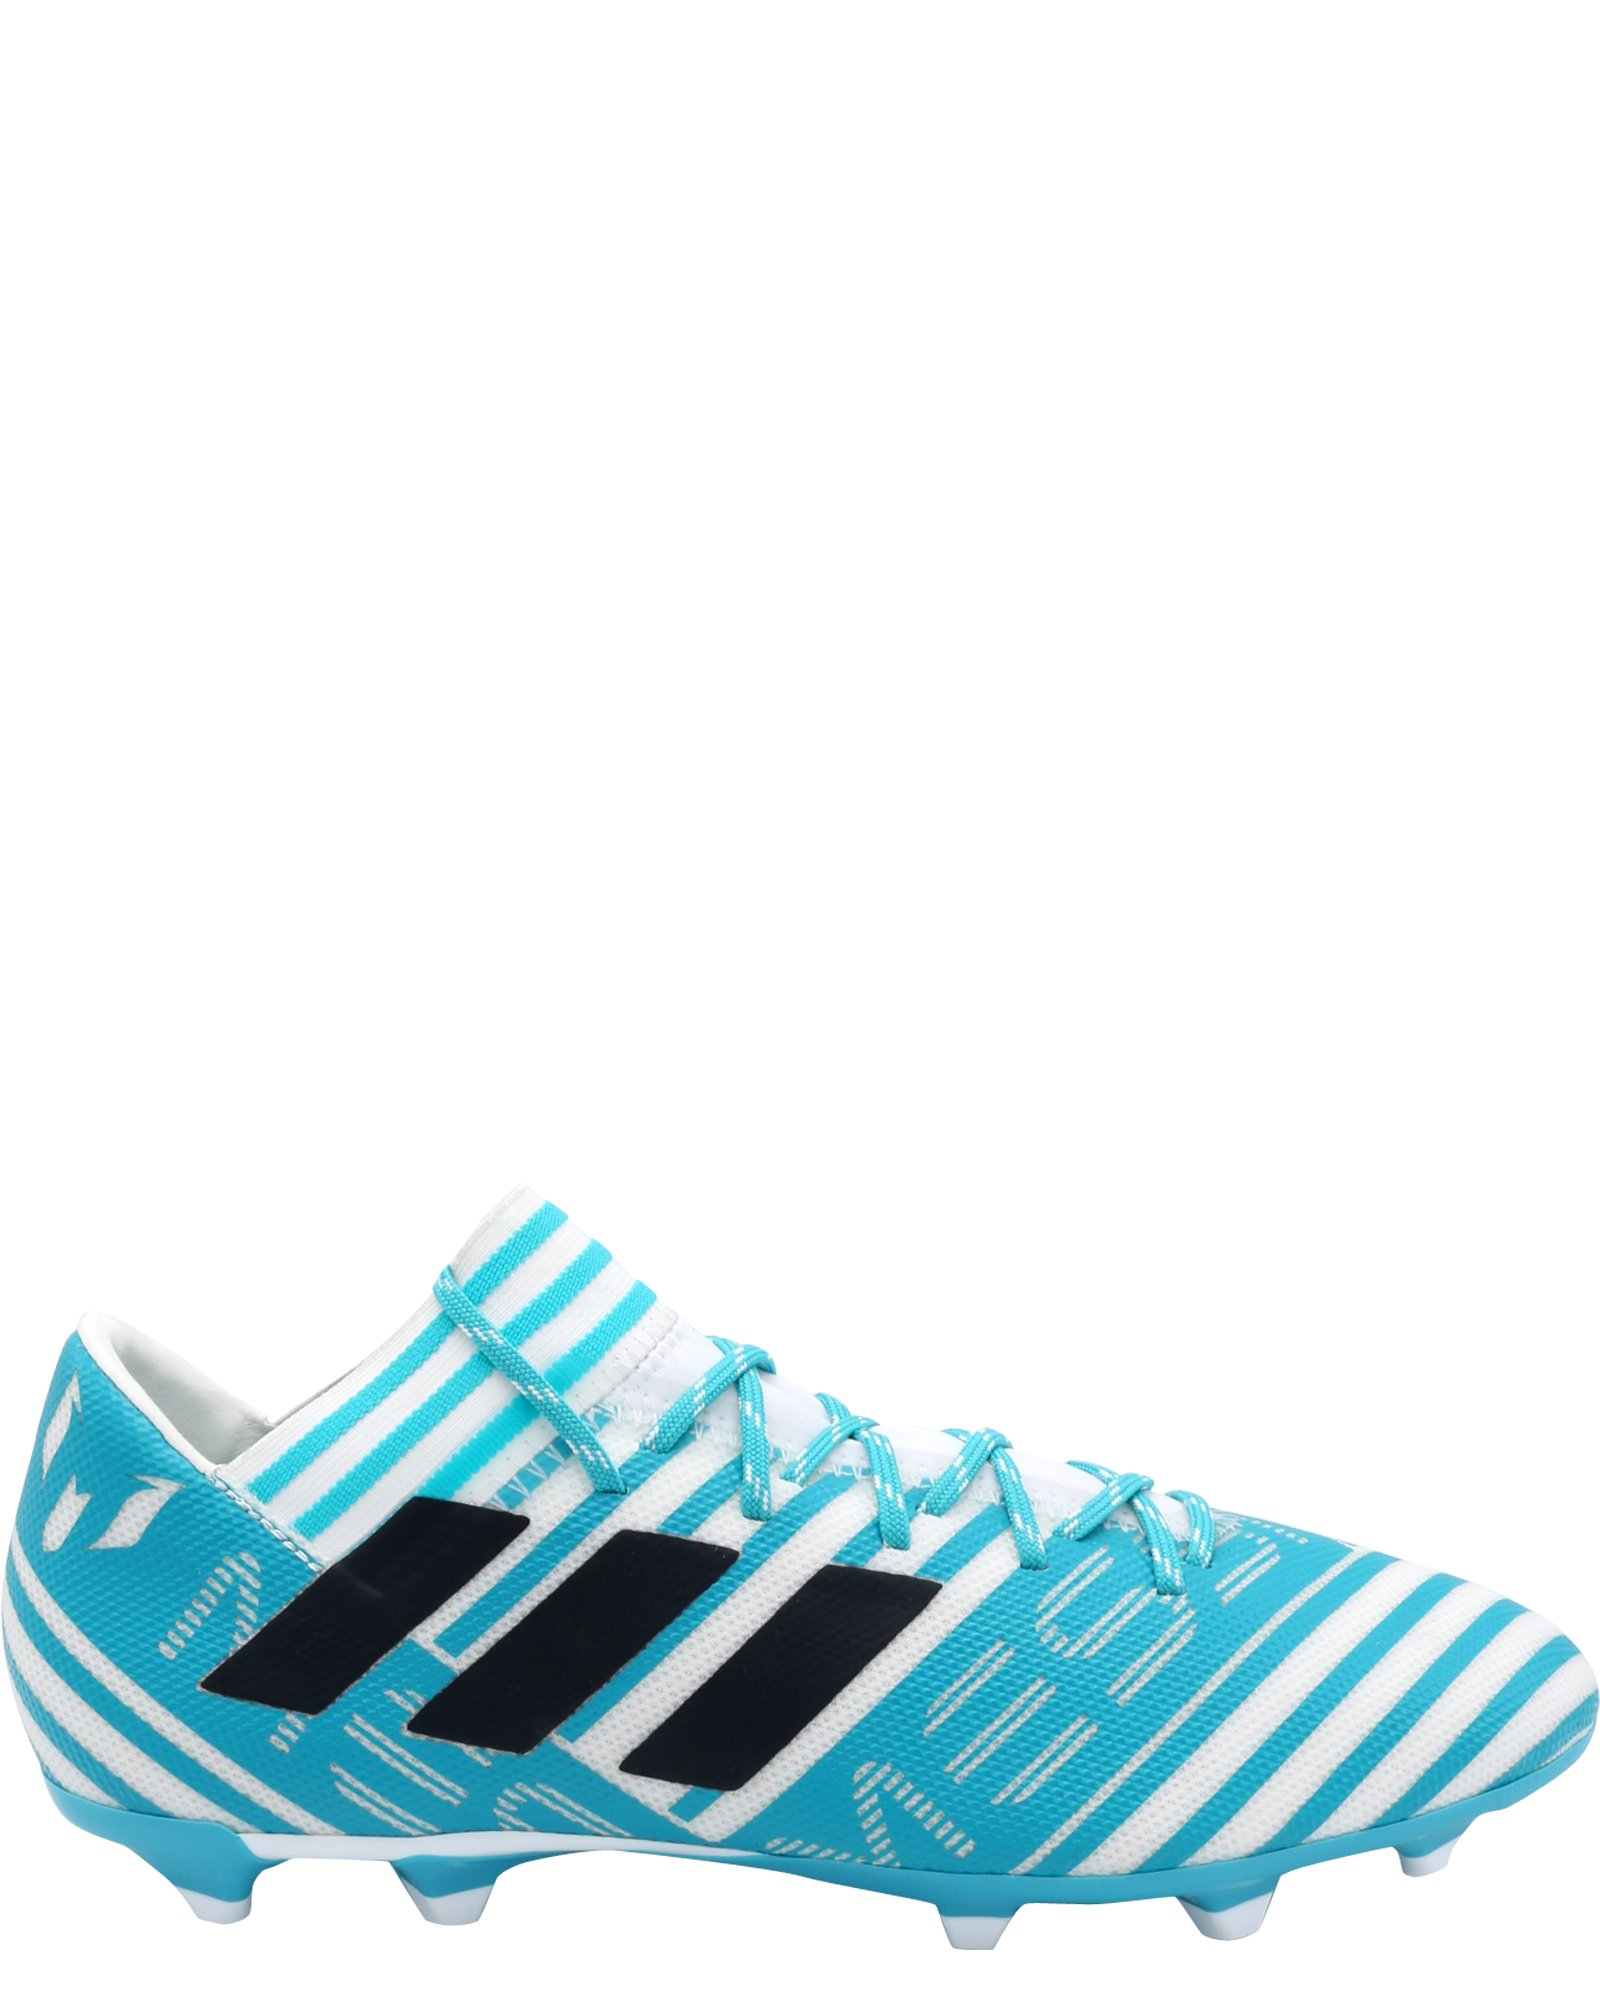 adidas Men's Nemeziz Messi 17.3 FG Soccer Shoe, White/Legend Ink/Energy Blue, 8 Medium US